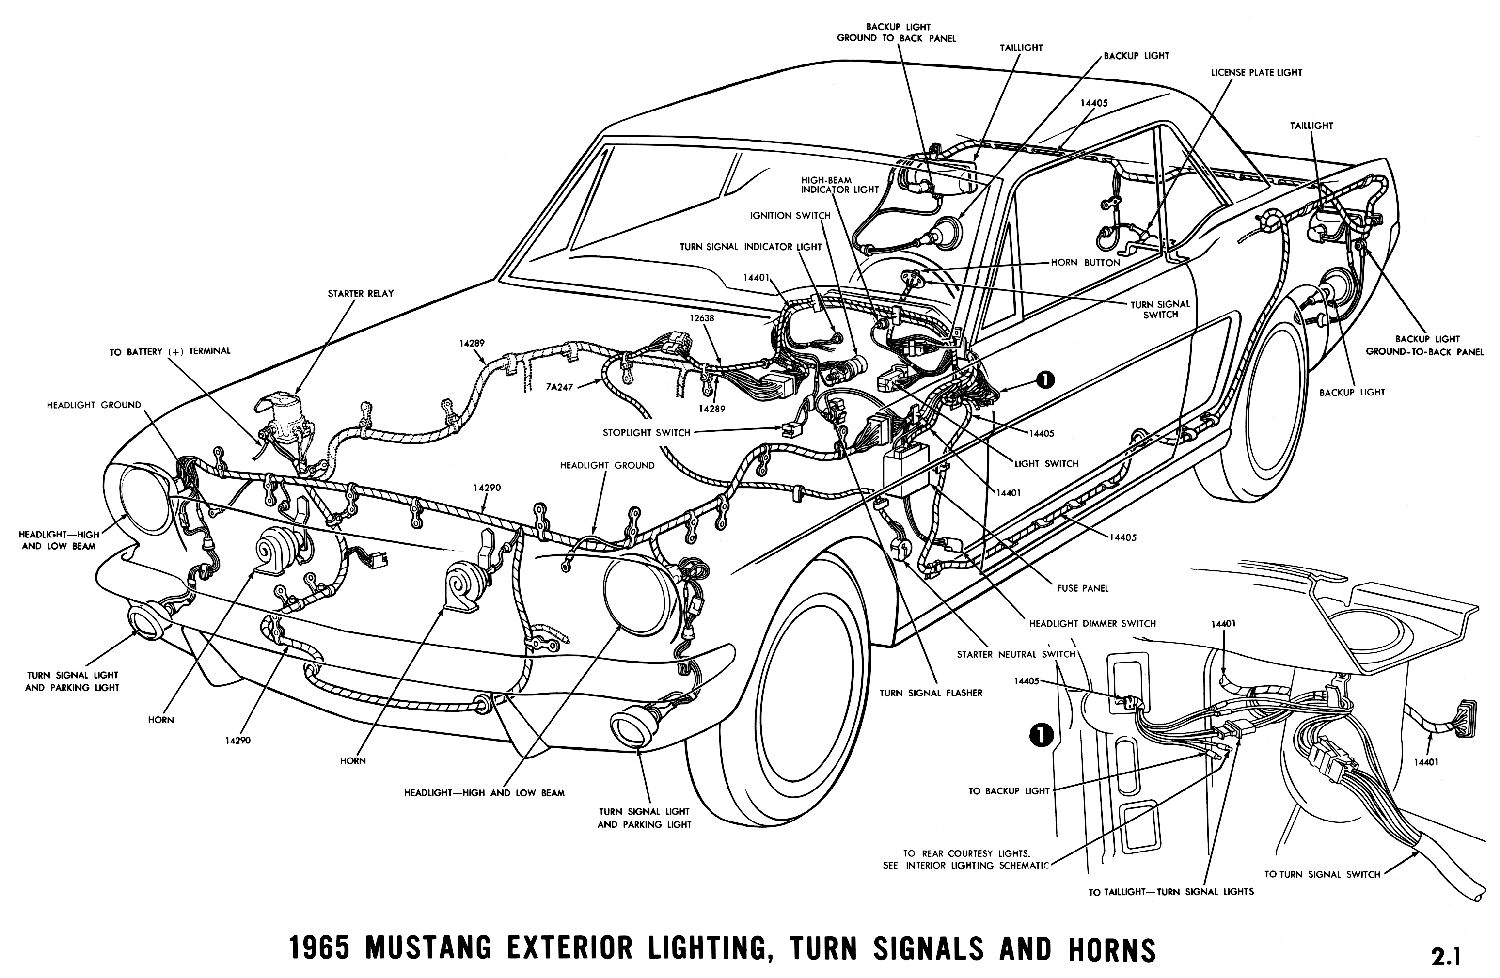 1965d 1965 mustang wiring diagrams average joe restoration 1965 mustang turn signal wiring diagram at soozxer.org